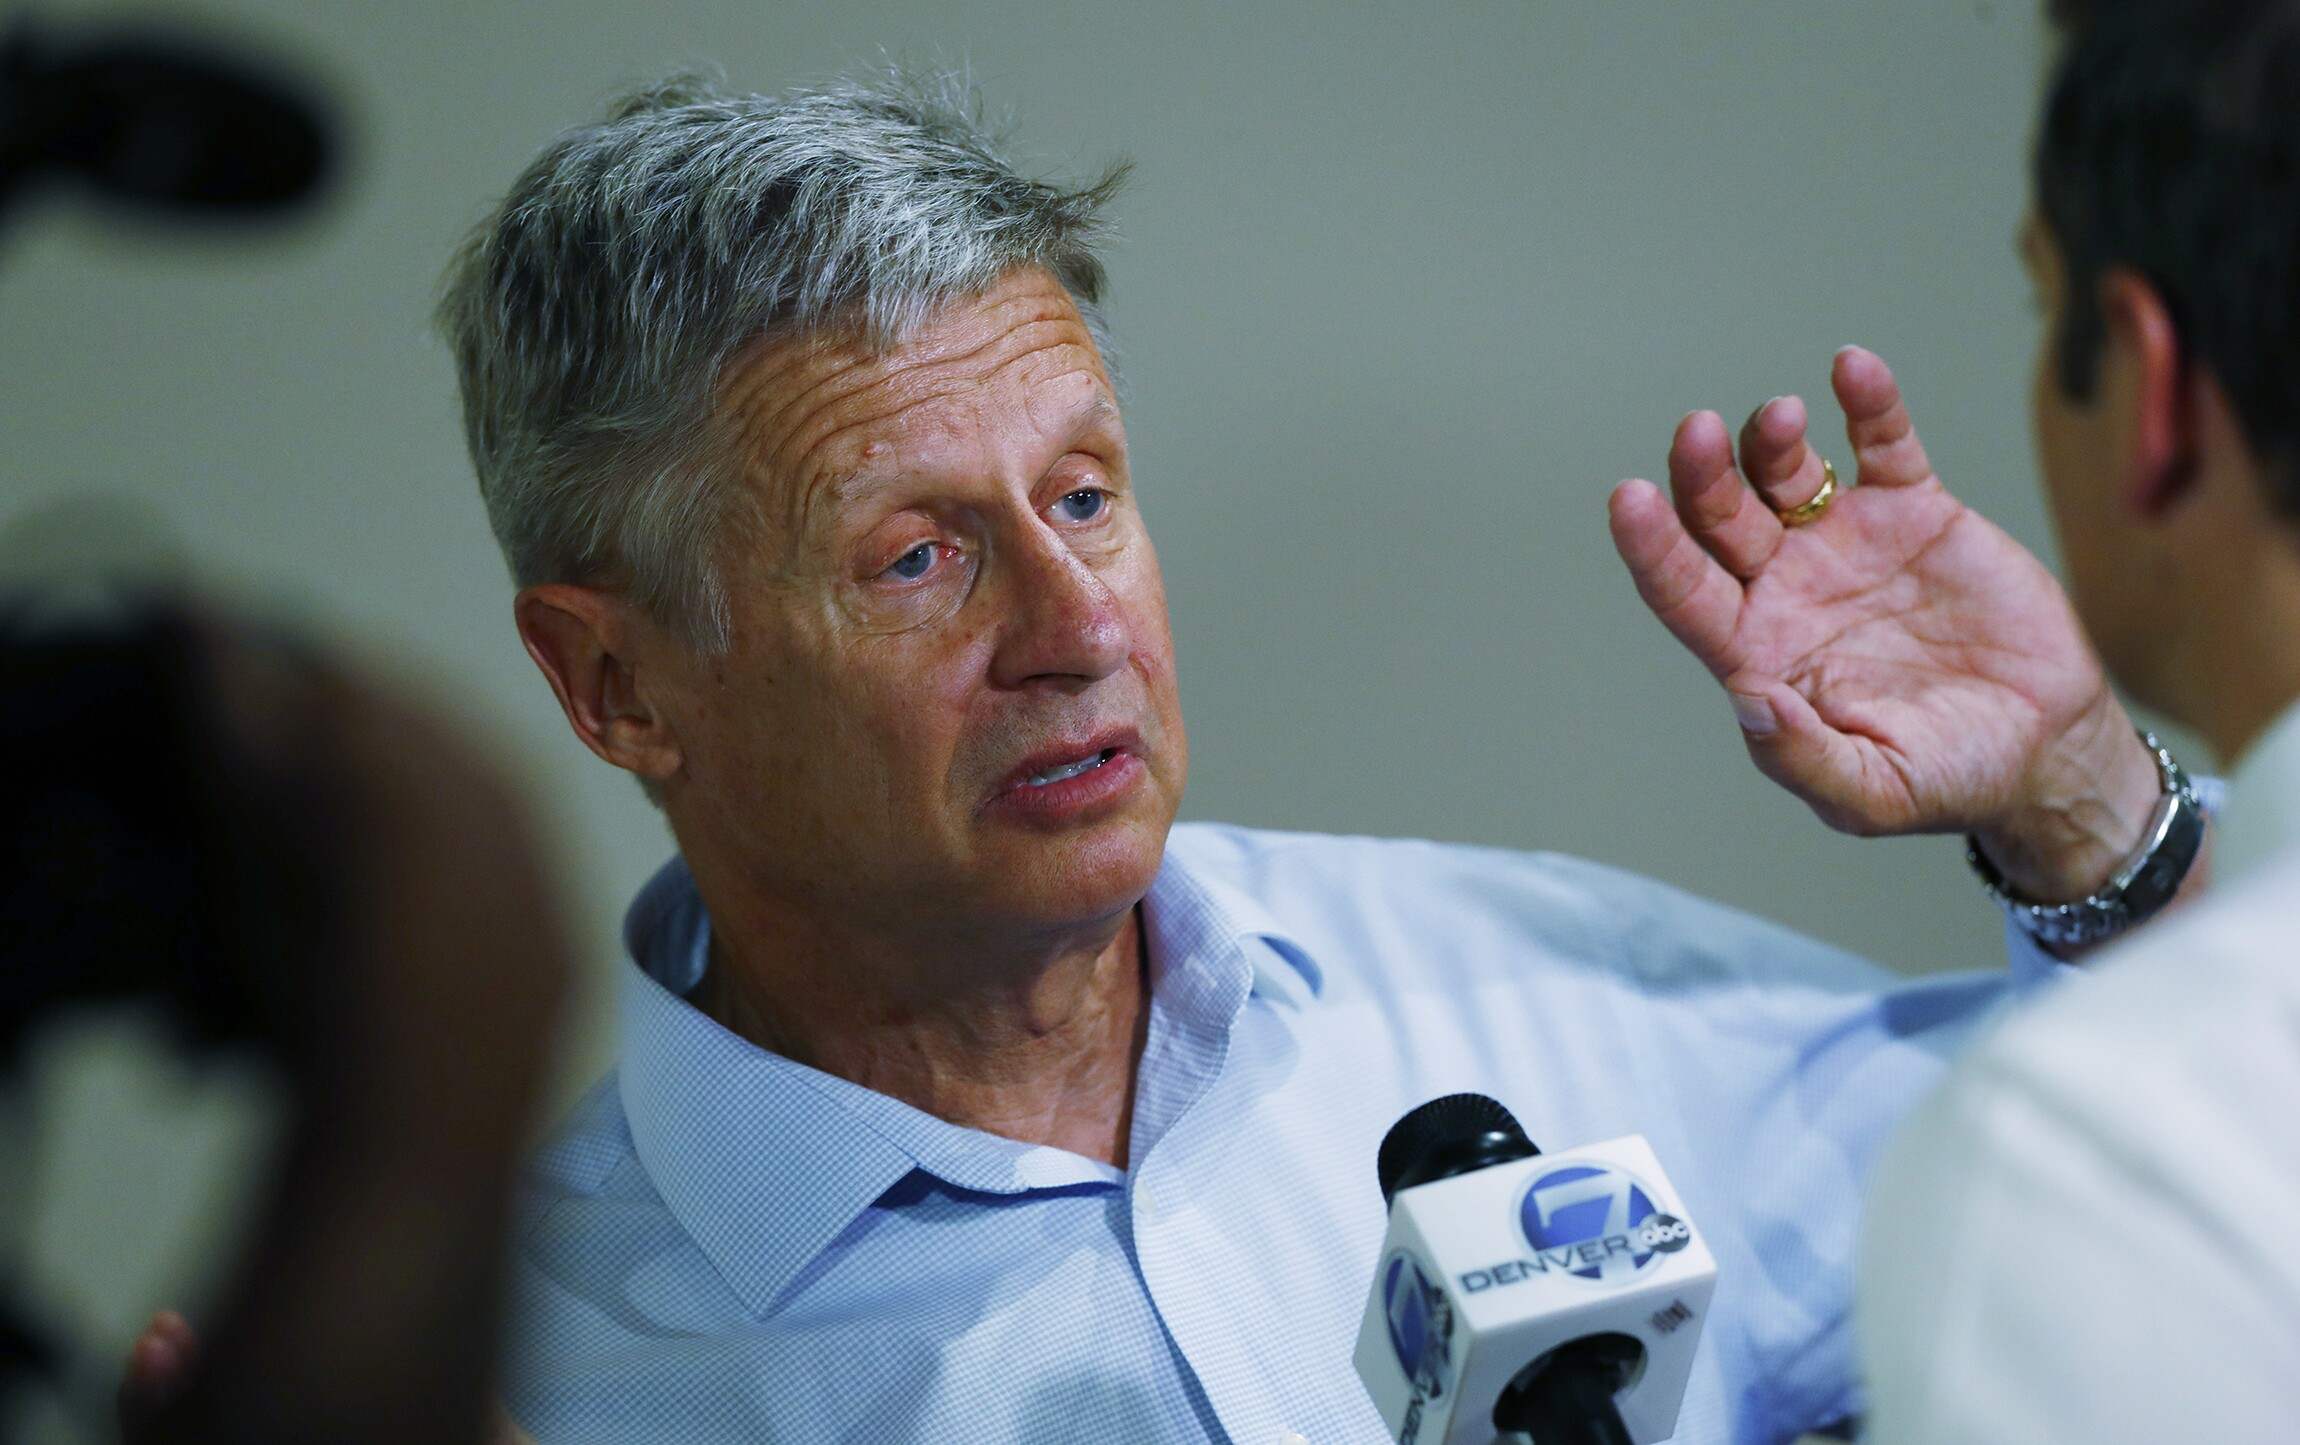 did gary johnson just have another aleppo moment